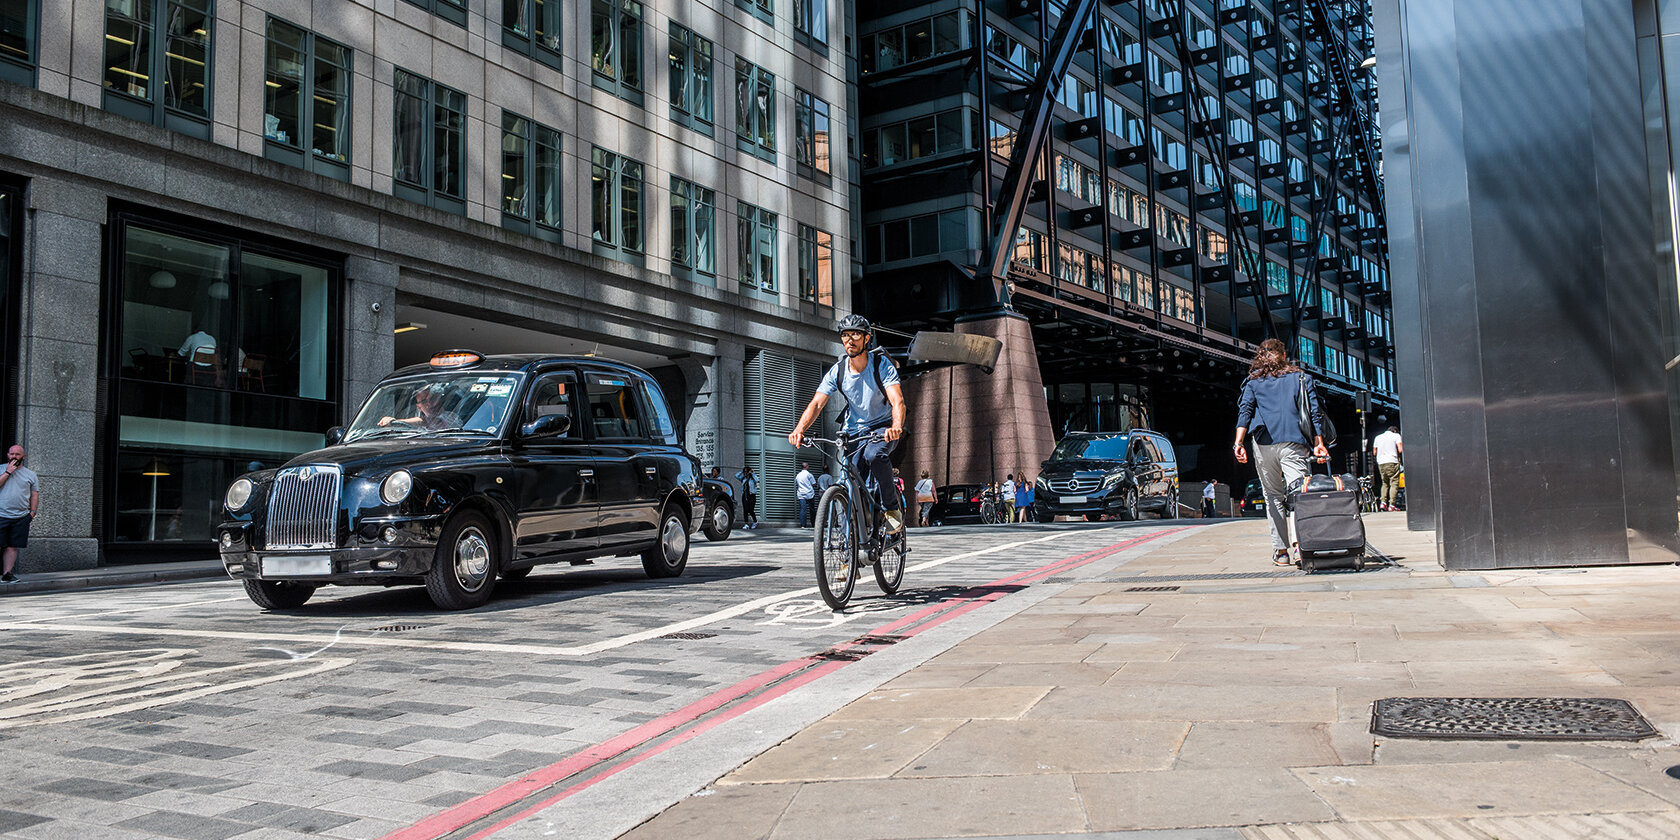 Exploring urban London on a Bosch eBike